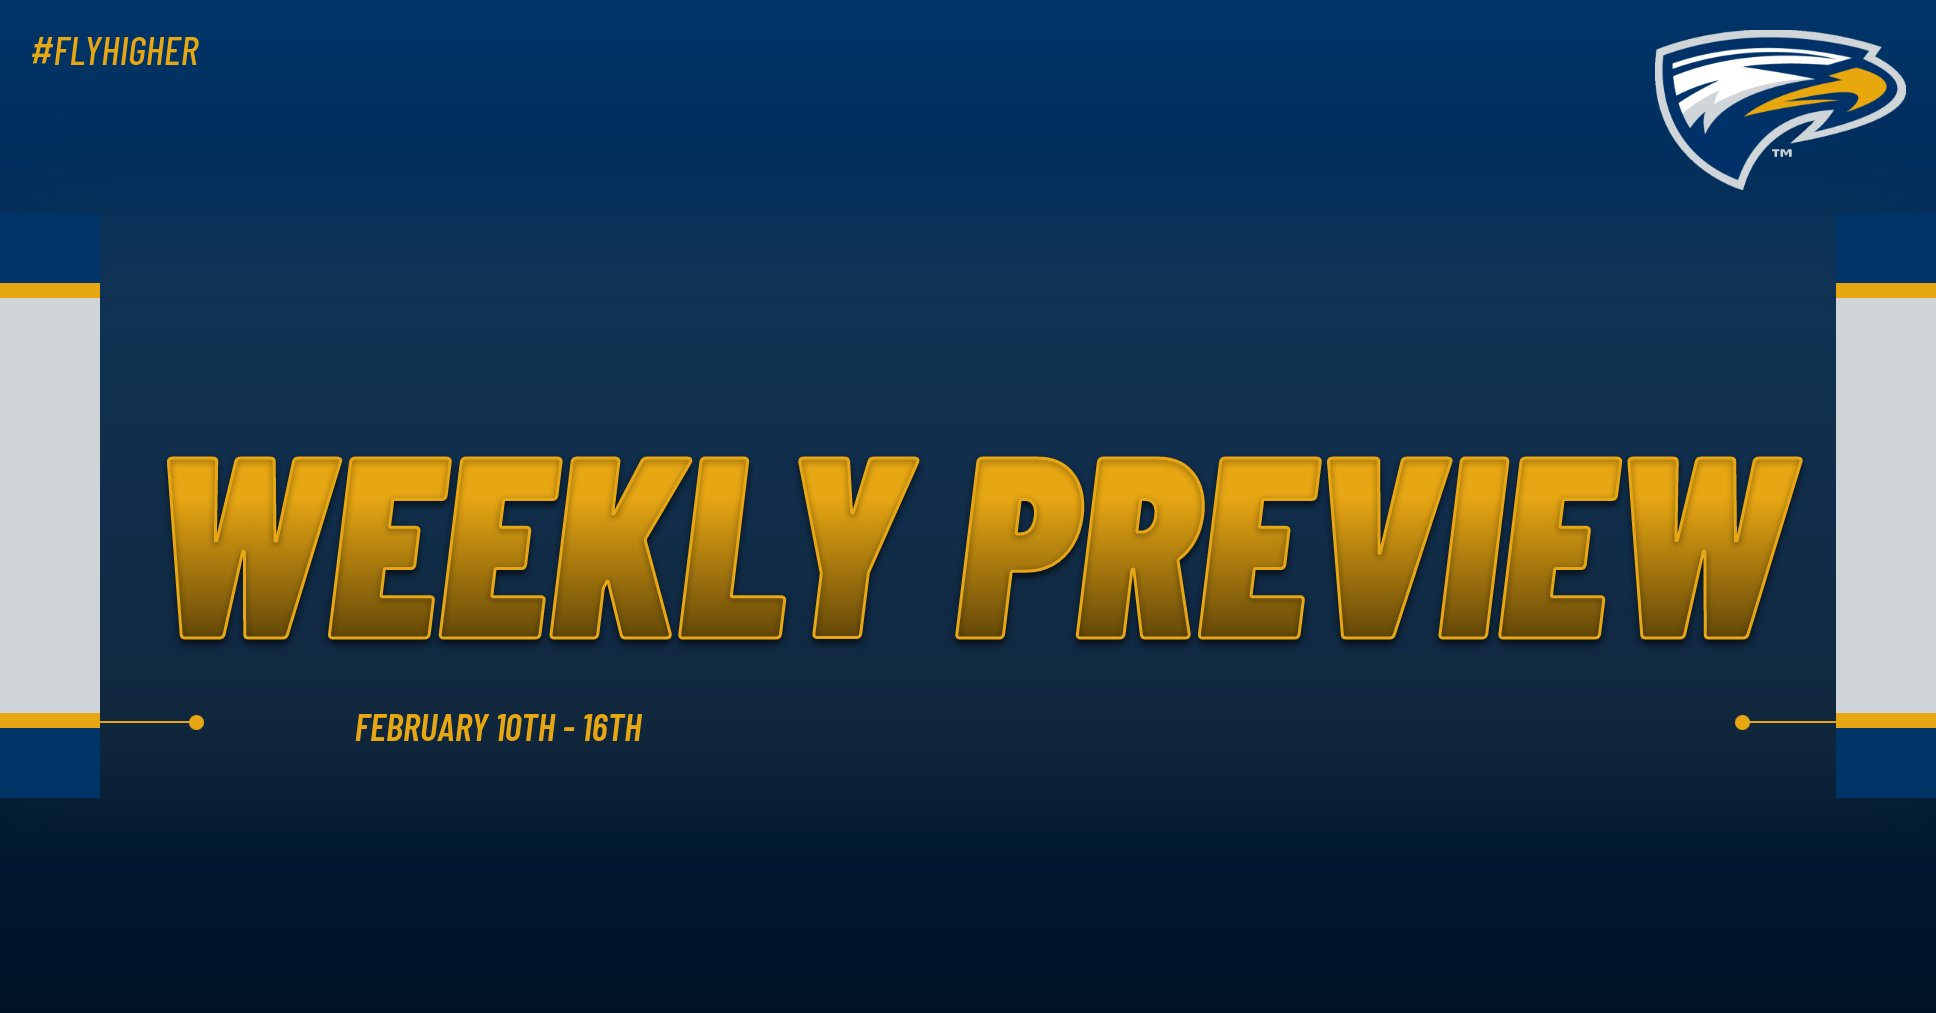 Emory Athletics Weekly Preview - February 10th - 16th